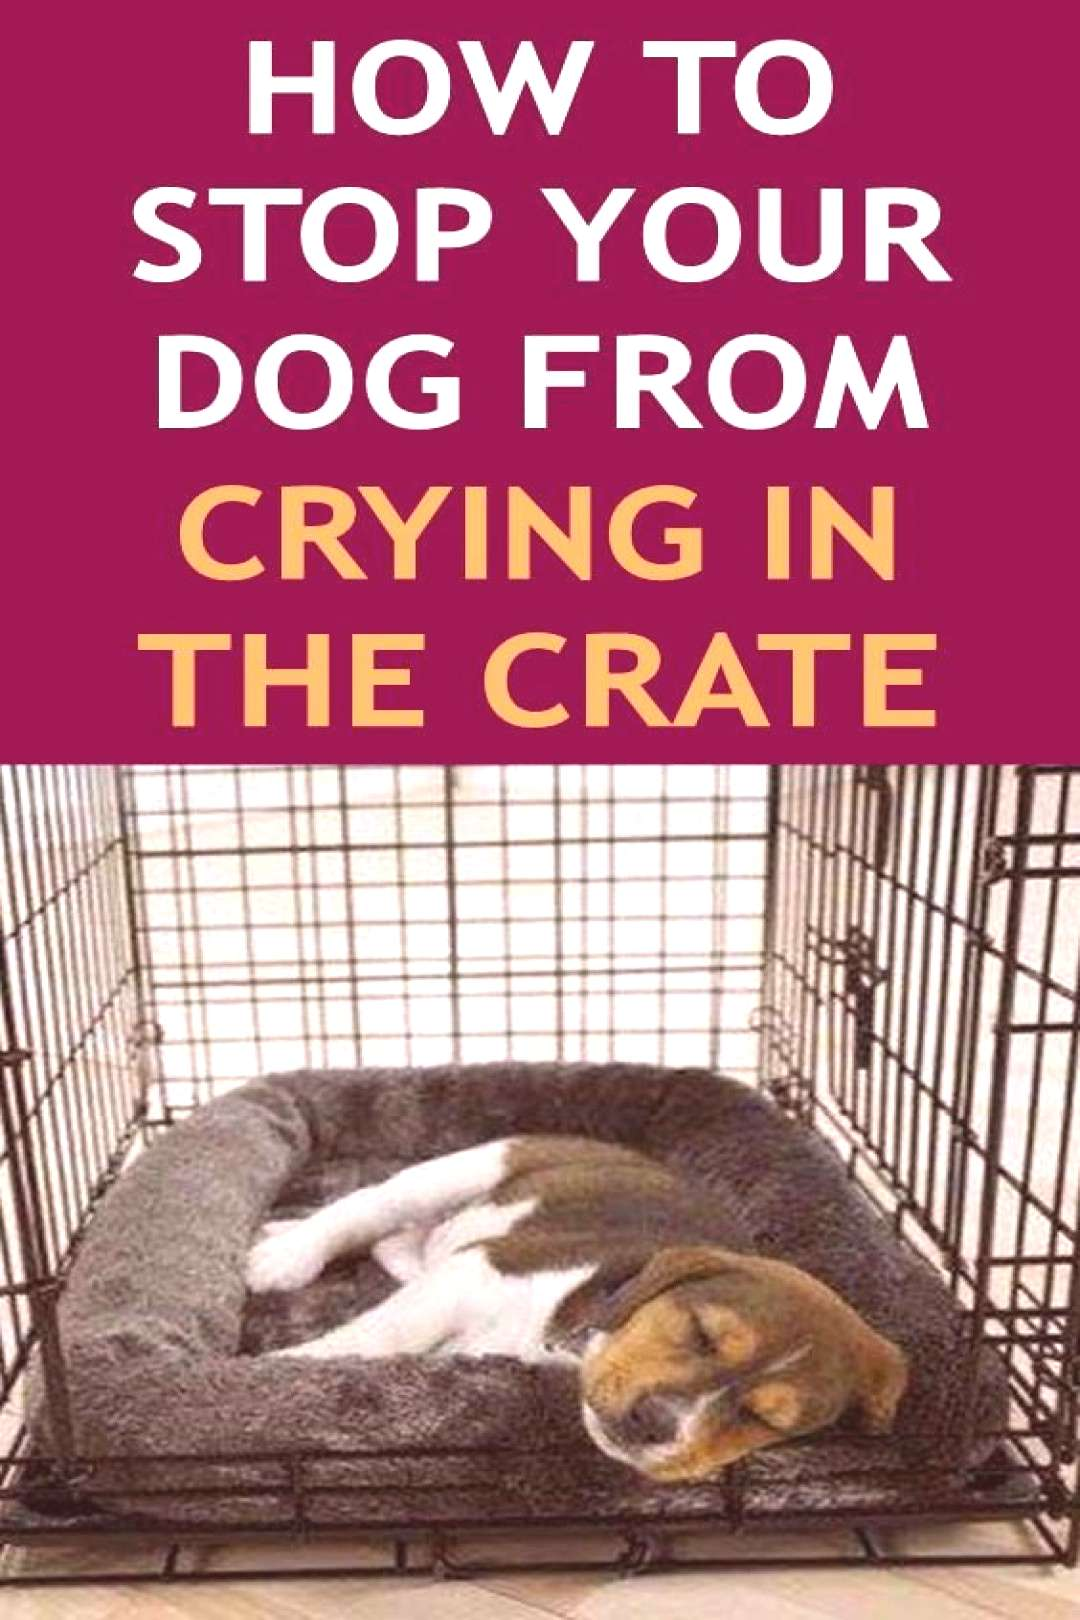 How to Stop Your Dog From Crying in the Crate (Crate Training 101) Wondering about how to crate tra